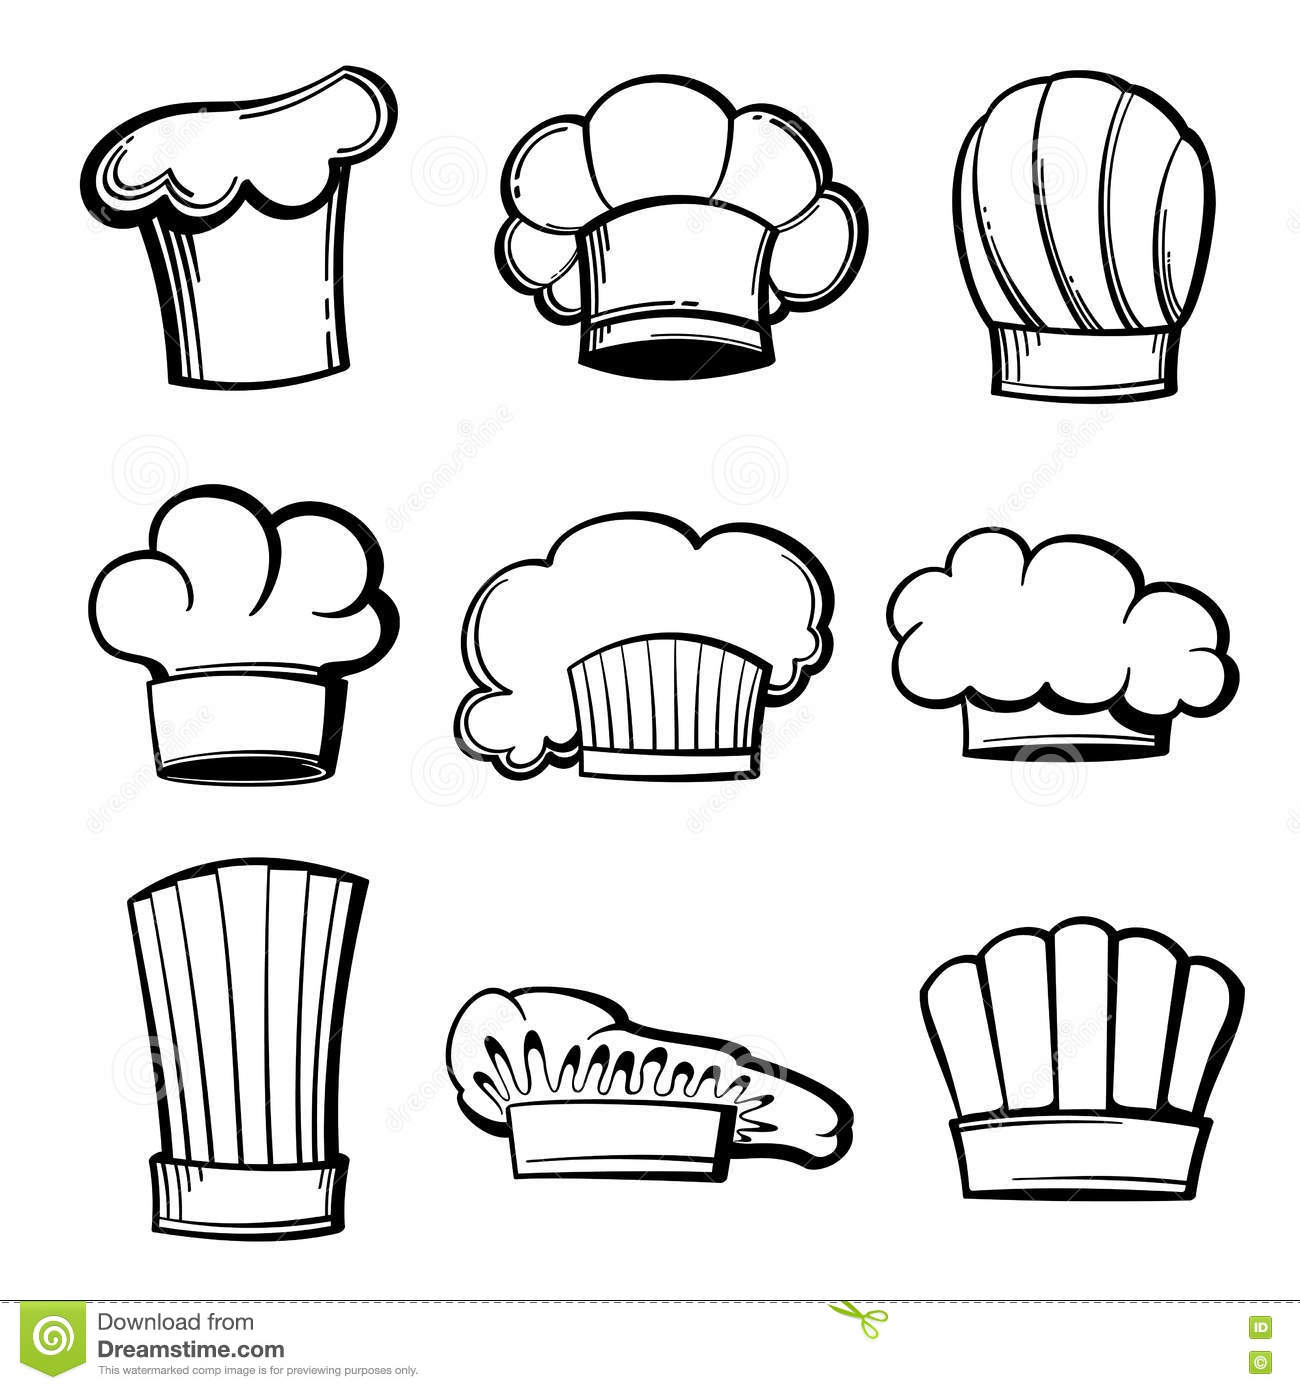 Ready to eat as well Stock Illustration Line Art Cutlery Fork Knife Spoon Chef Hat Doodles Digital Vector Illustration White Image59877083 together with Stock Vector Mom With Fresh Baked Pies Retro Clipart Illustration furthermore Ilustra C3 A7 C3 A3o Stock Ilustra C3 A7 C3 A3o Do Vetor Do  C3 ADcone Alimento  C3 ADcones Do Restaurante Logotipo Emblemas Image59331805 together with The Cooper Presents A Scotch And Cigar Dinner 723. on chef at restaurant